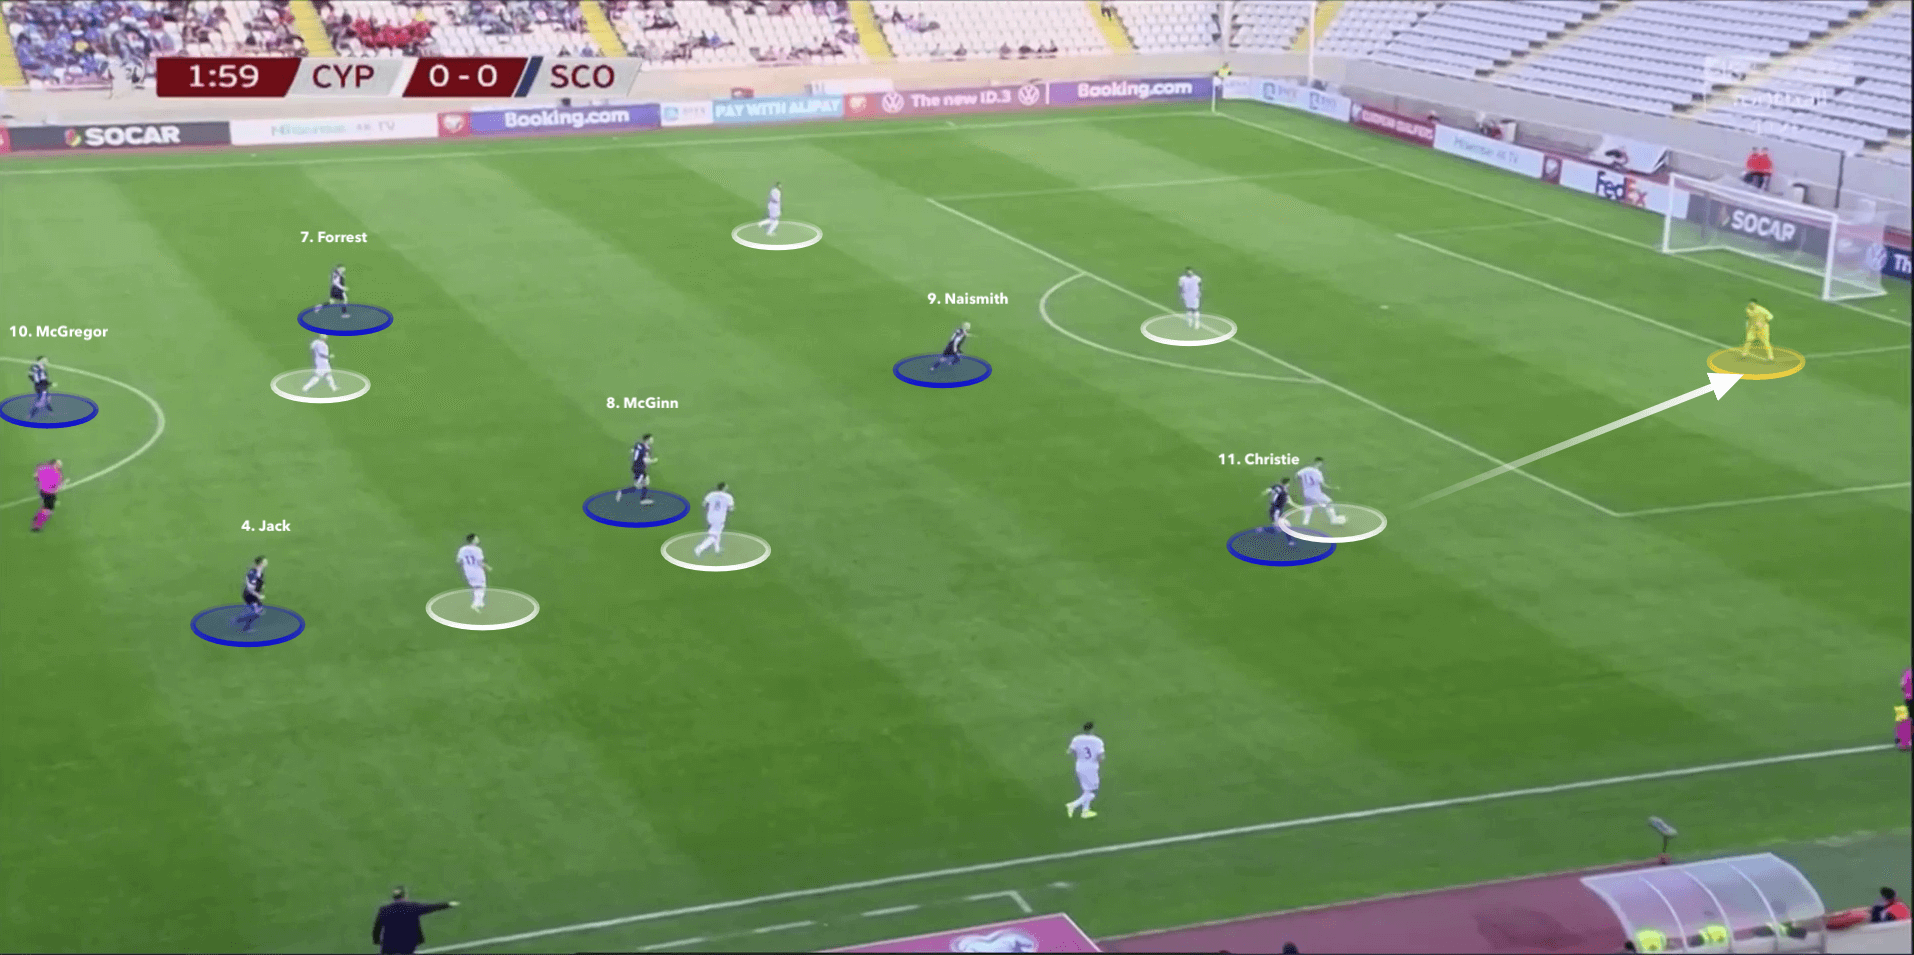 UEFA Euro 2020 Qualifiers: Cyprus v Scotland - tactical analysis - tactics